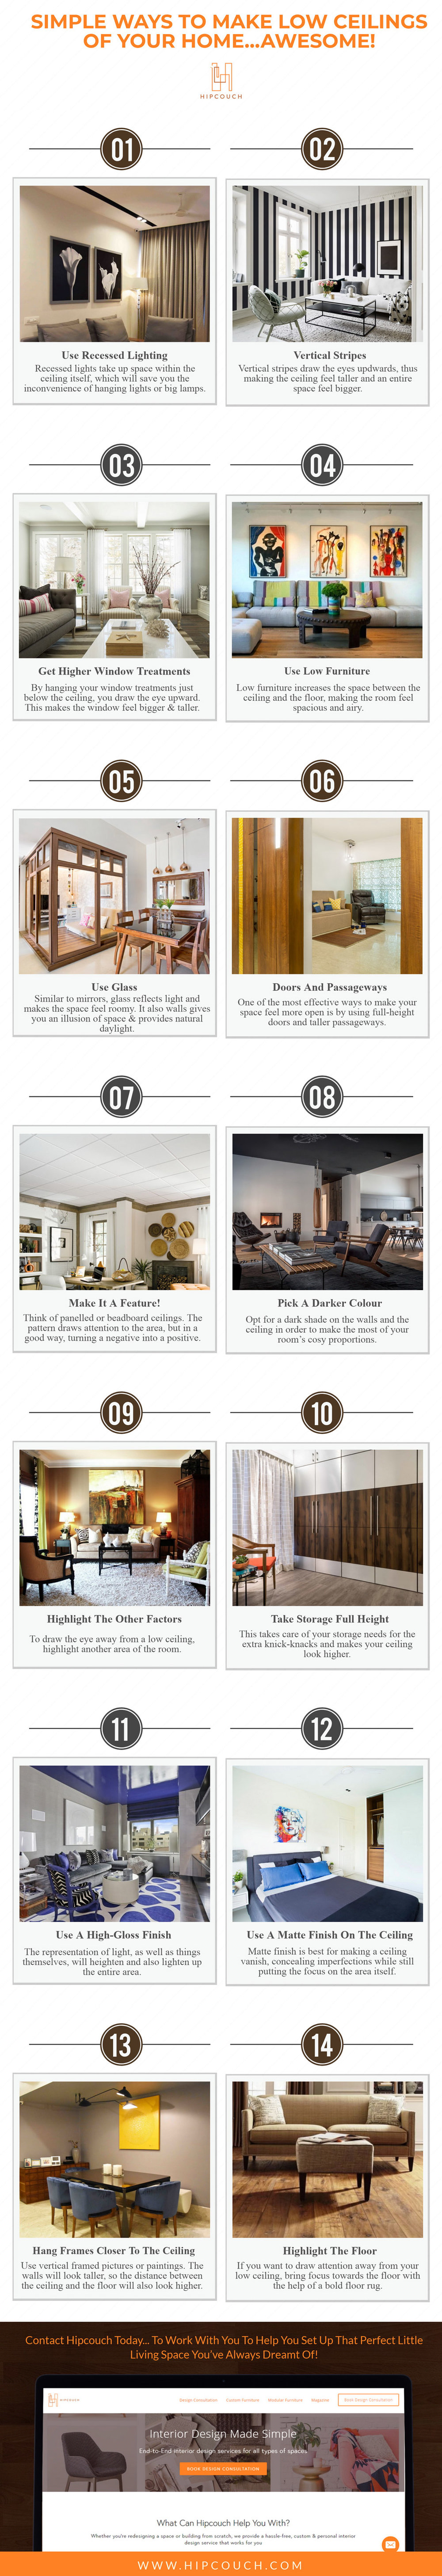 how-to-make-low-ceilings-look-awesome.jpg